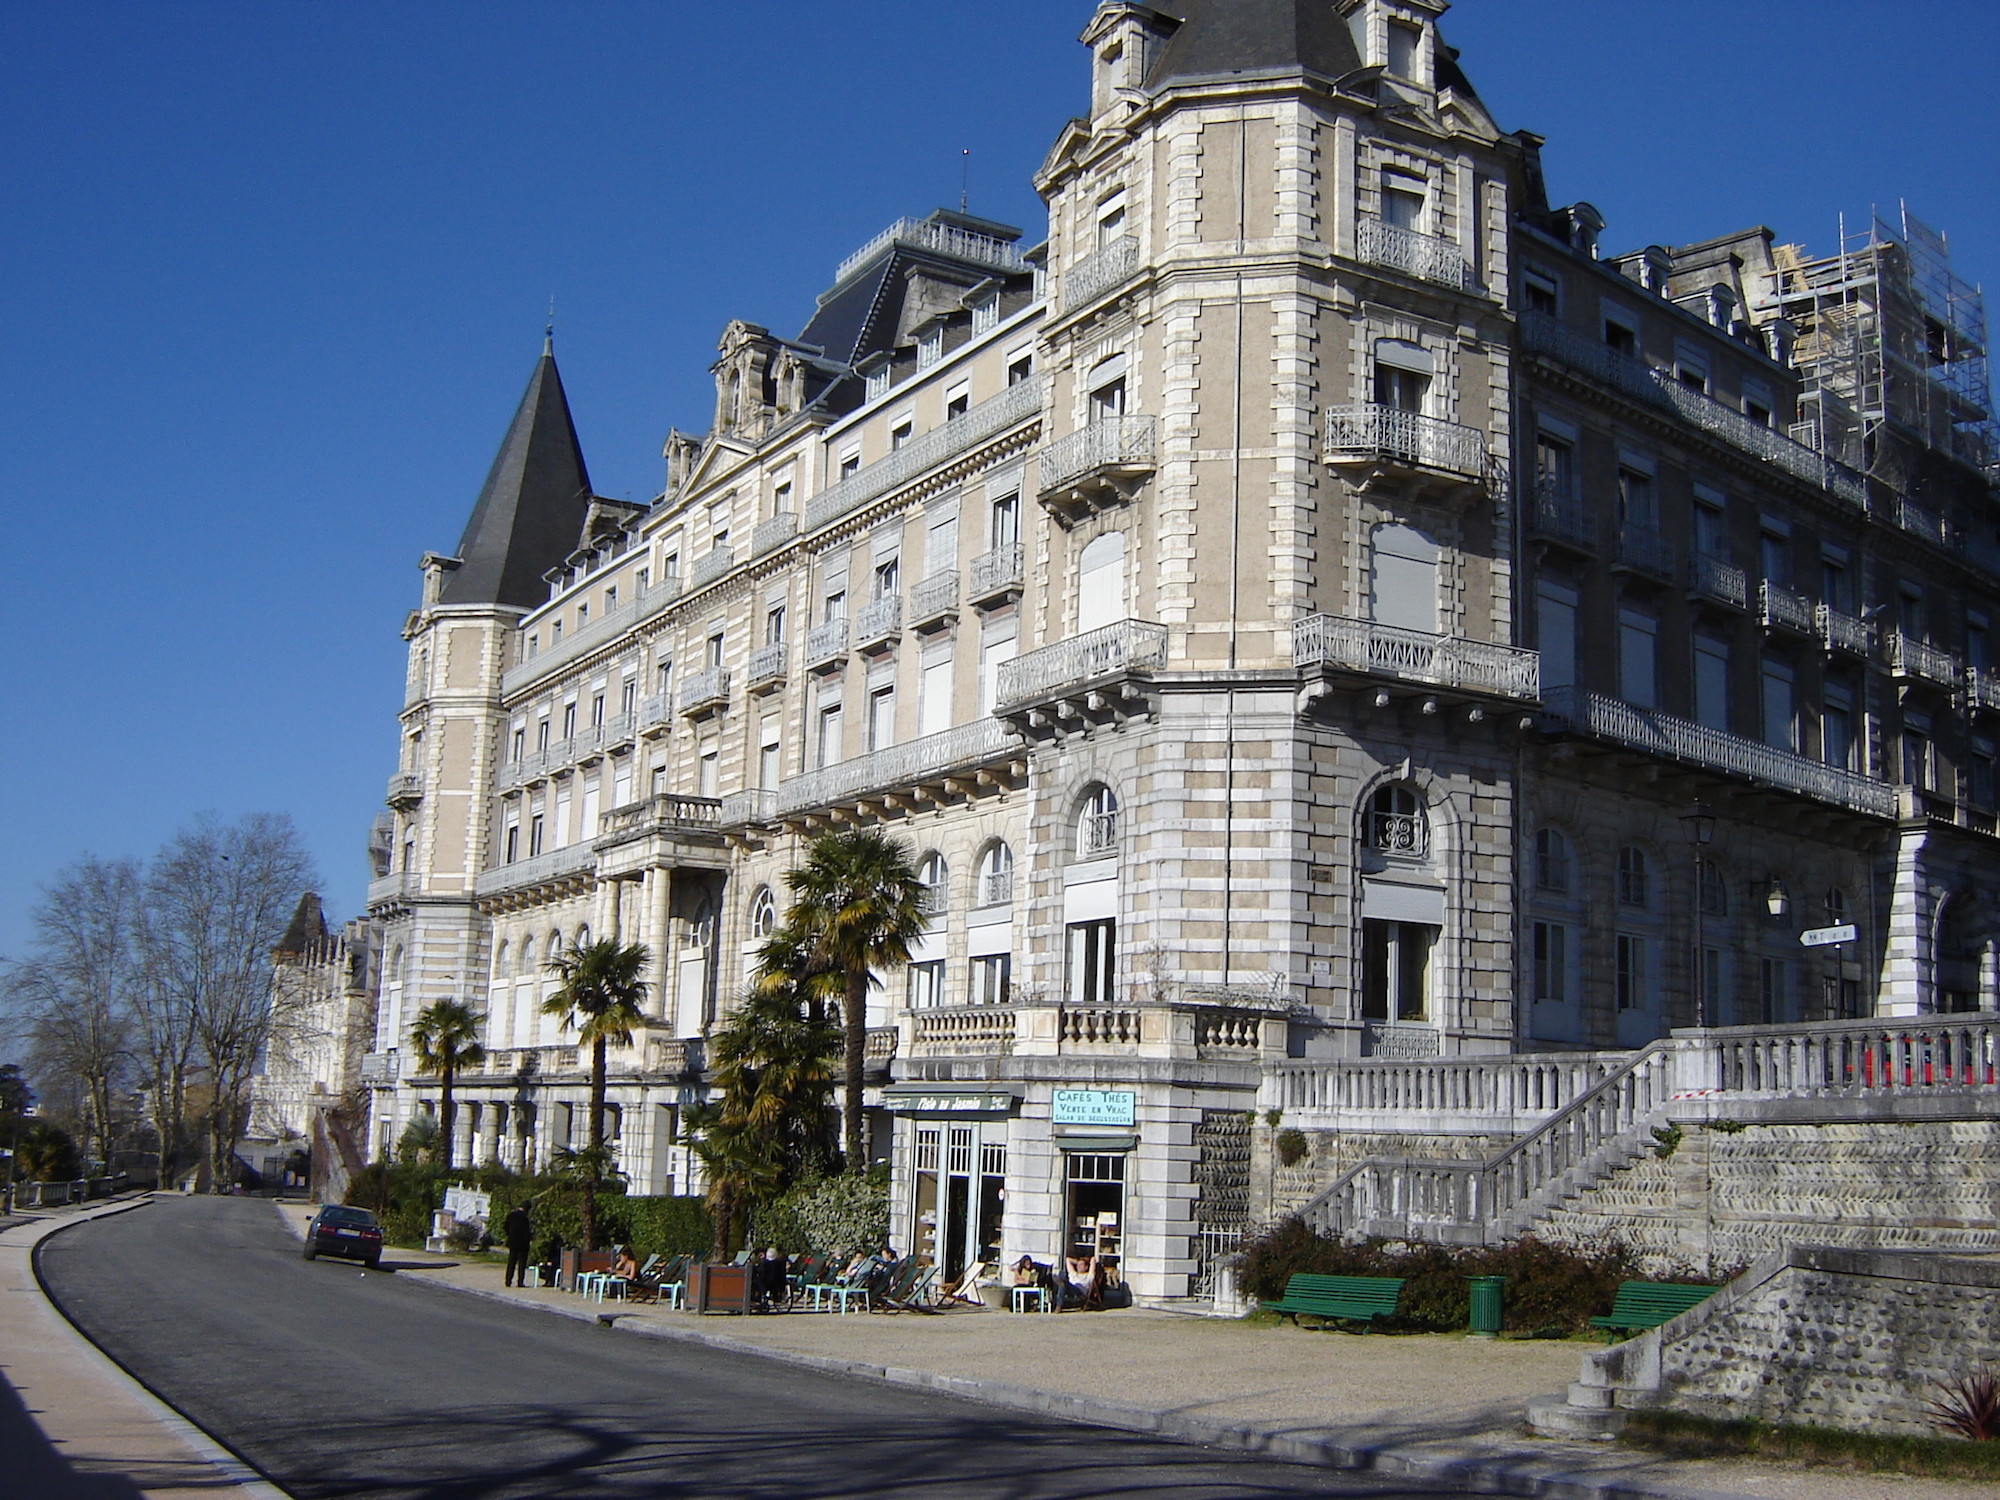 Visites guidées de l'ancien Grand Hôtel Gassion